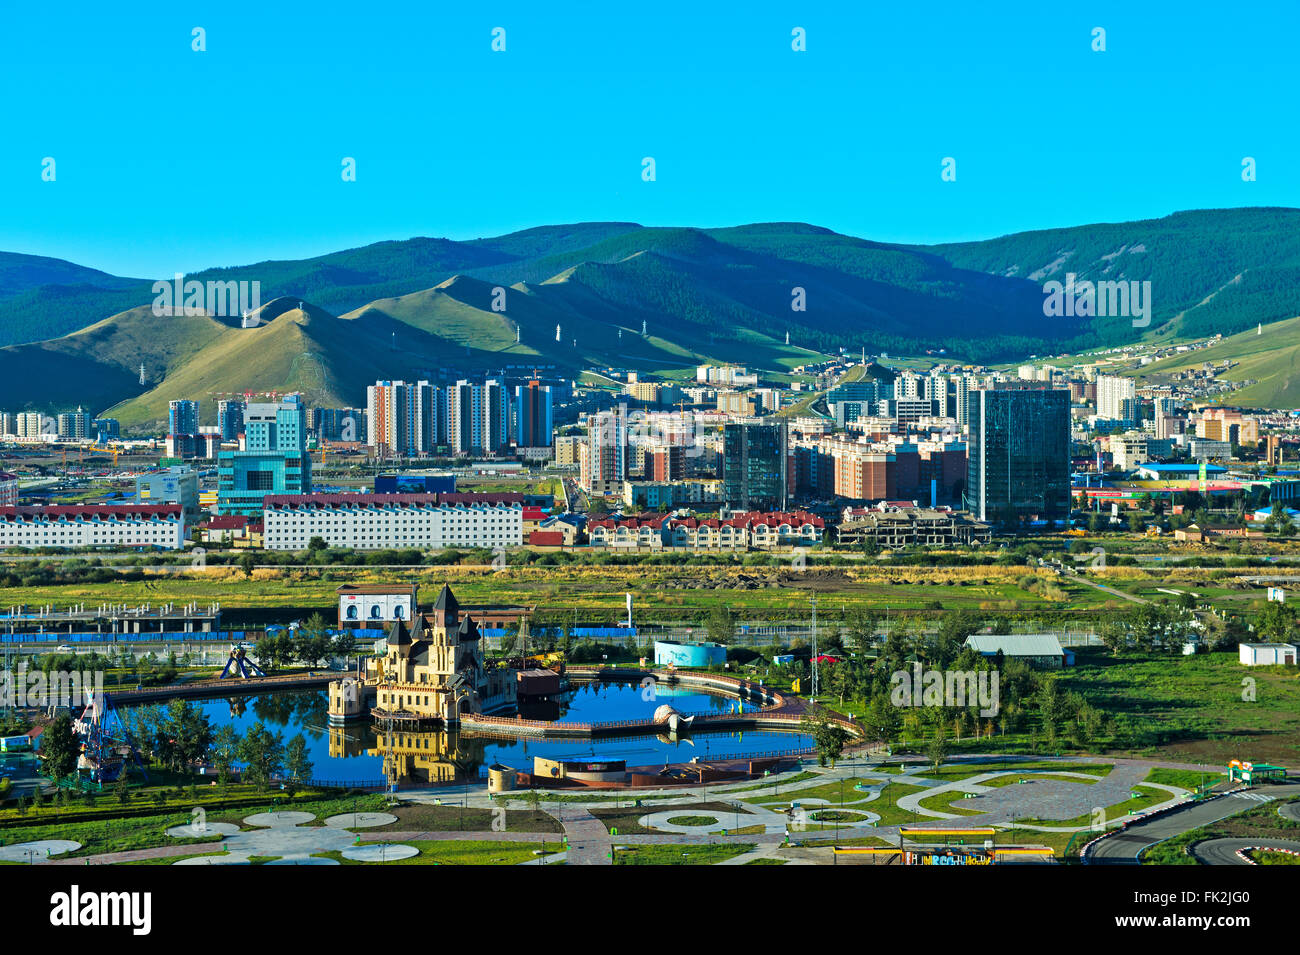 View over the National Amusement Park and the new residential areas in the South of Ulaanbataar, Capital of Mongolia - Stock Image